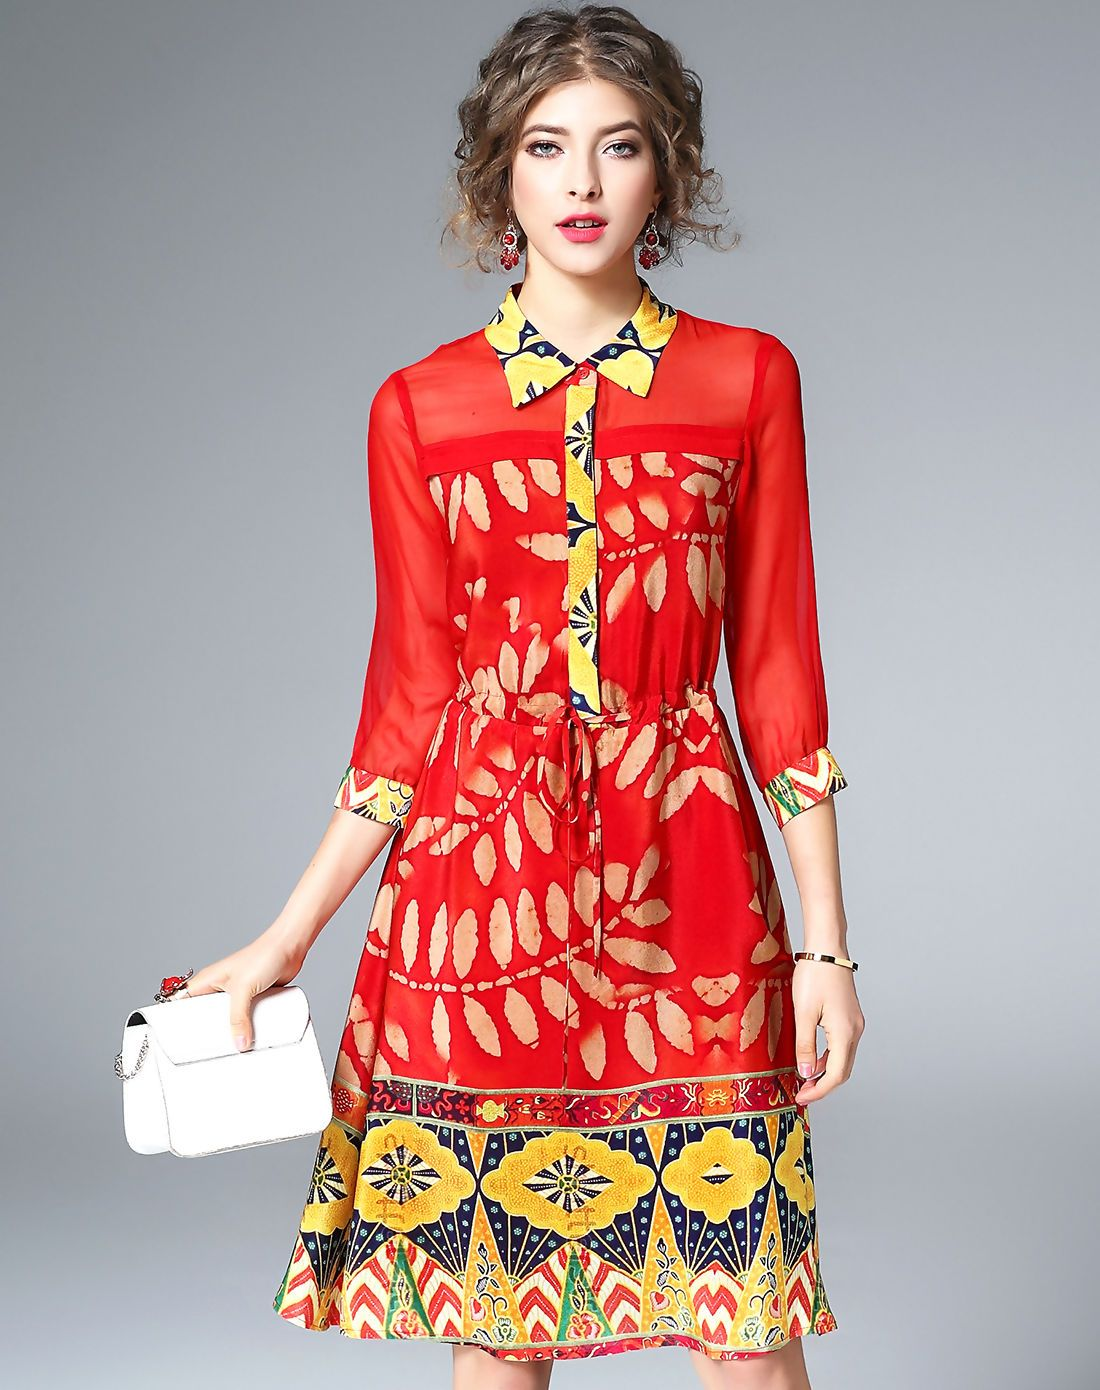 683d7f7a2 Shop Elenyun Silk Colour Block Printed Shirt Dress online❤ VIPme.com offers  quality Shirt Dresses from fashion designers at affordable prices.